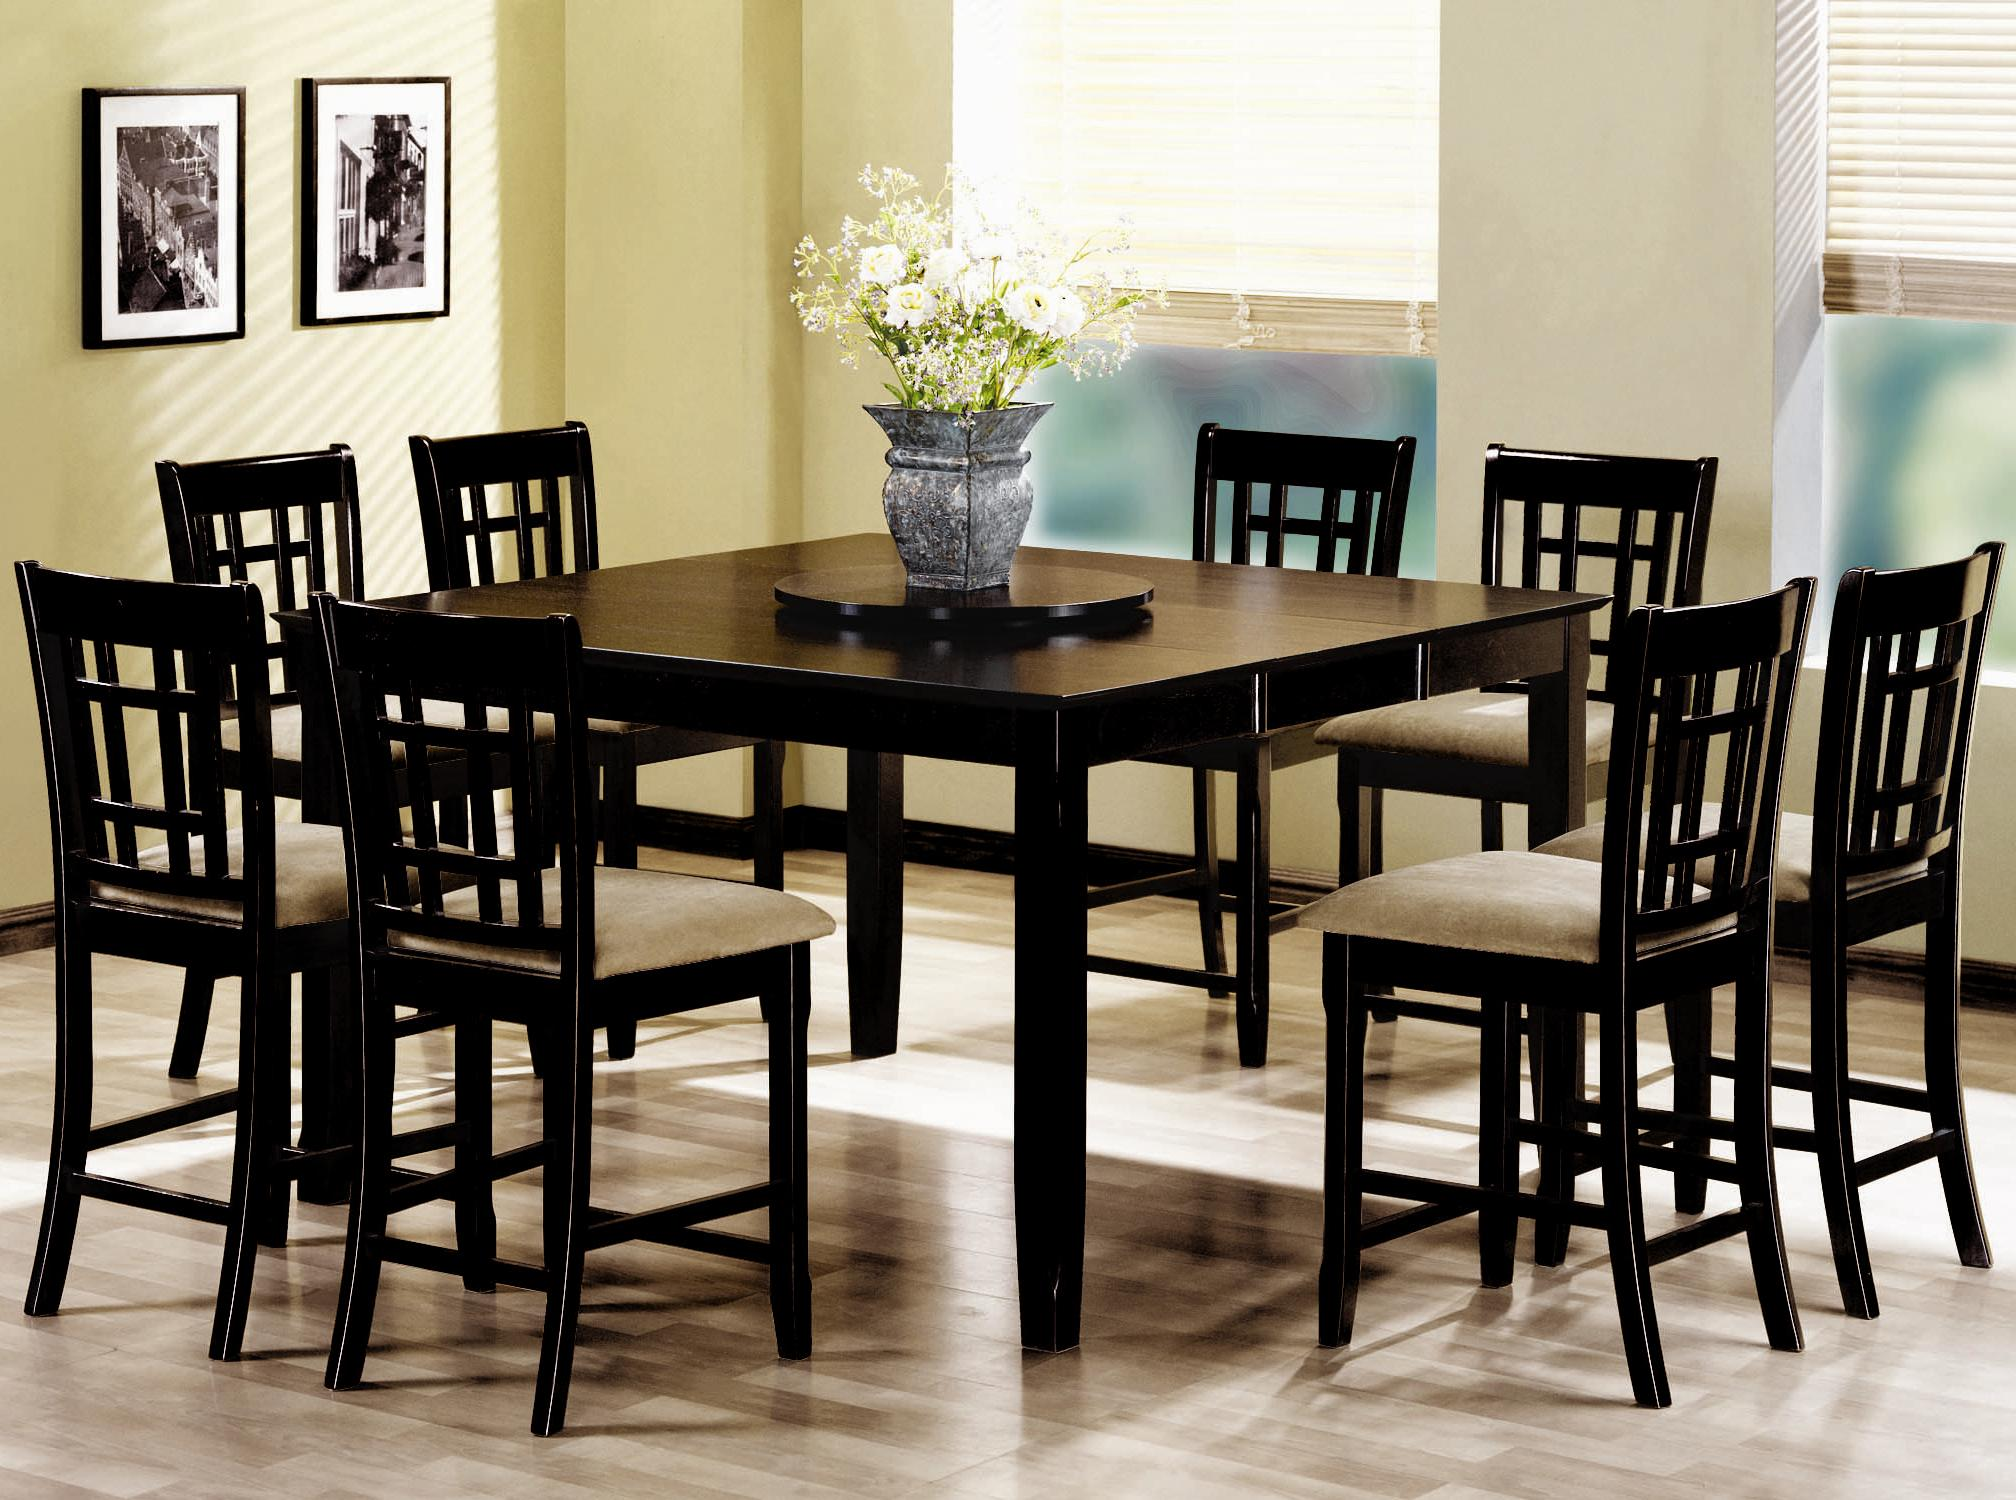 S Dining Room Table And Chairs